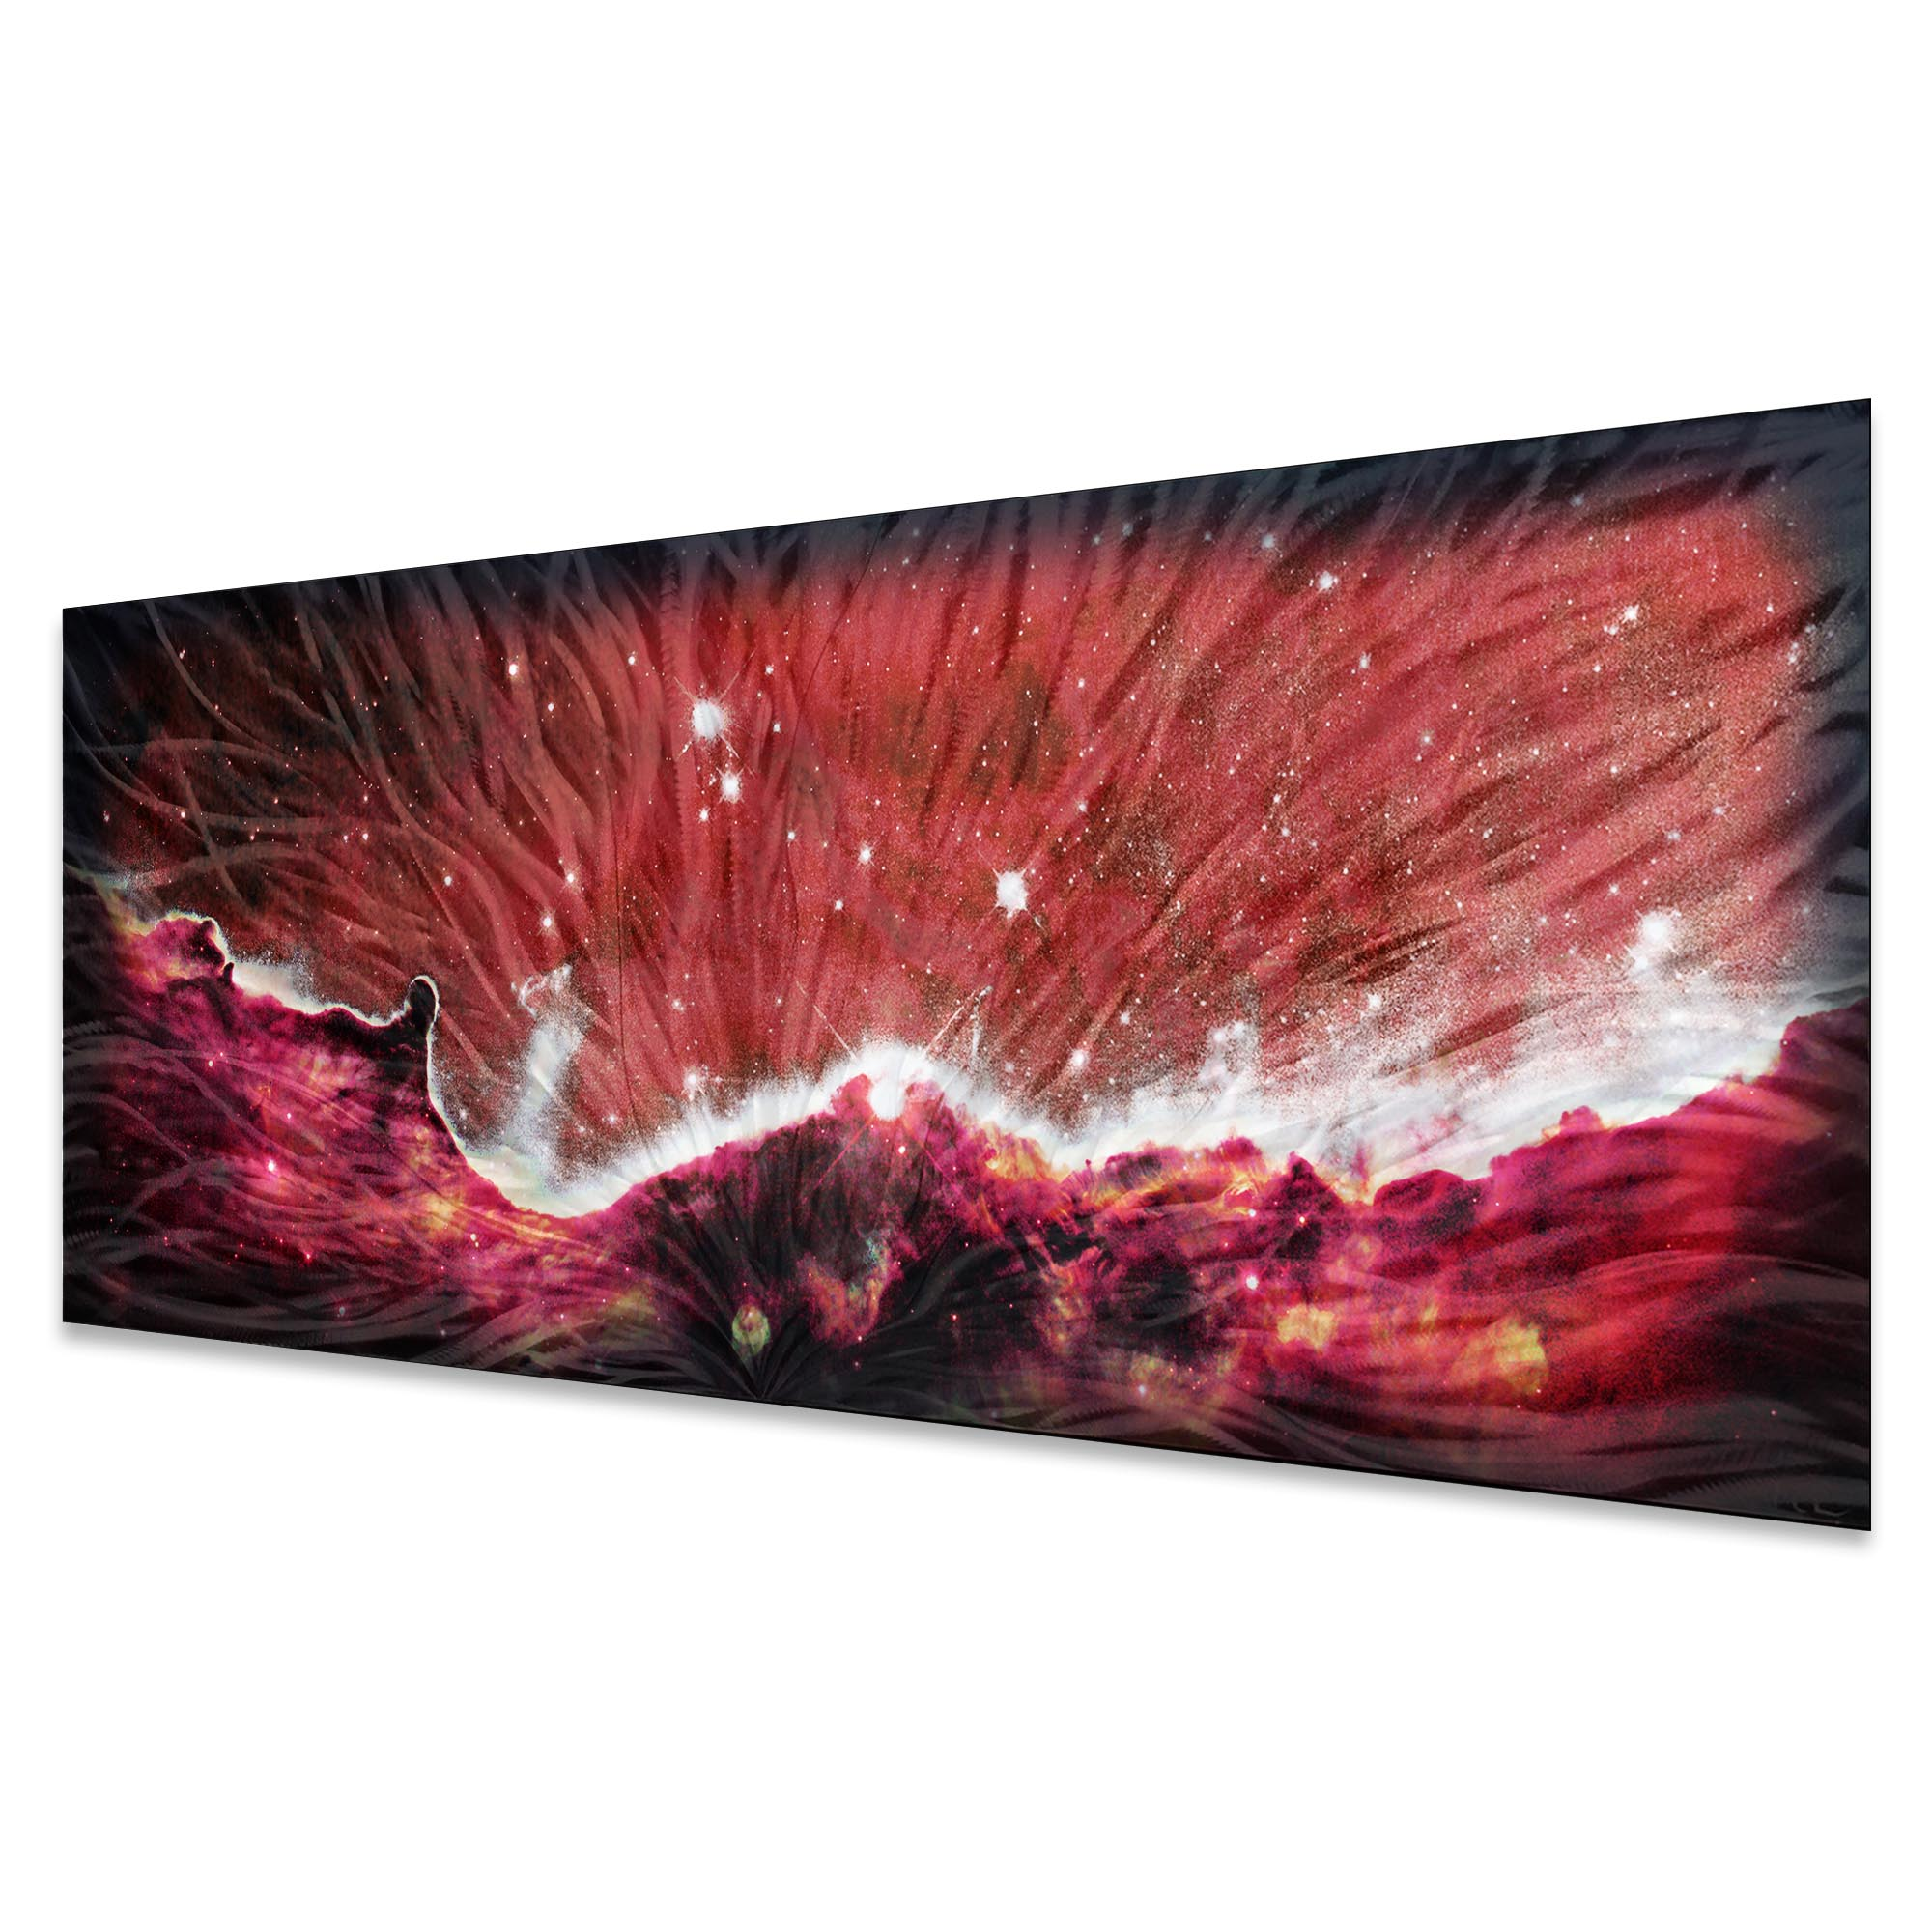 Celestial Landscape Red by Helena Martin - Original Abstract Art on Ground and Colored Metal - Image 2